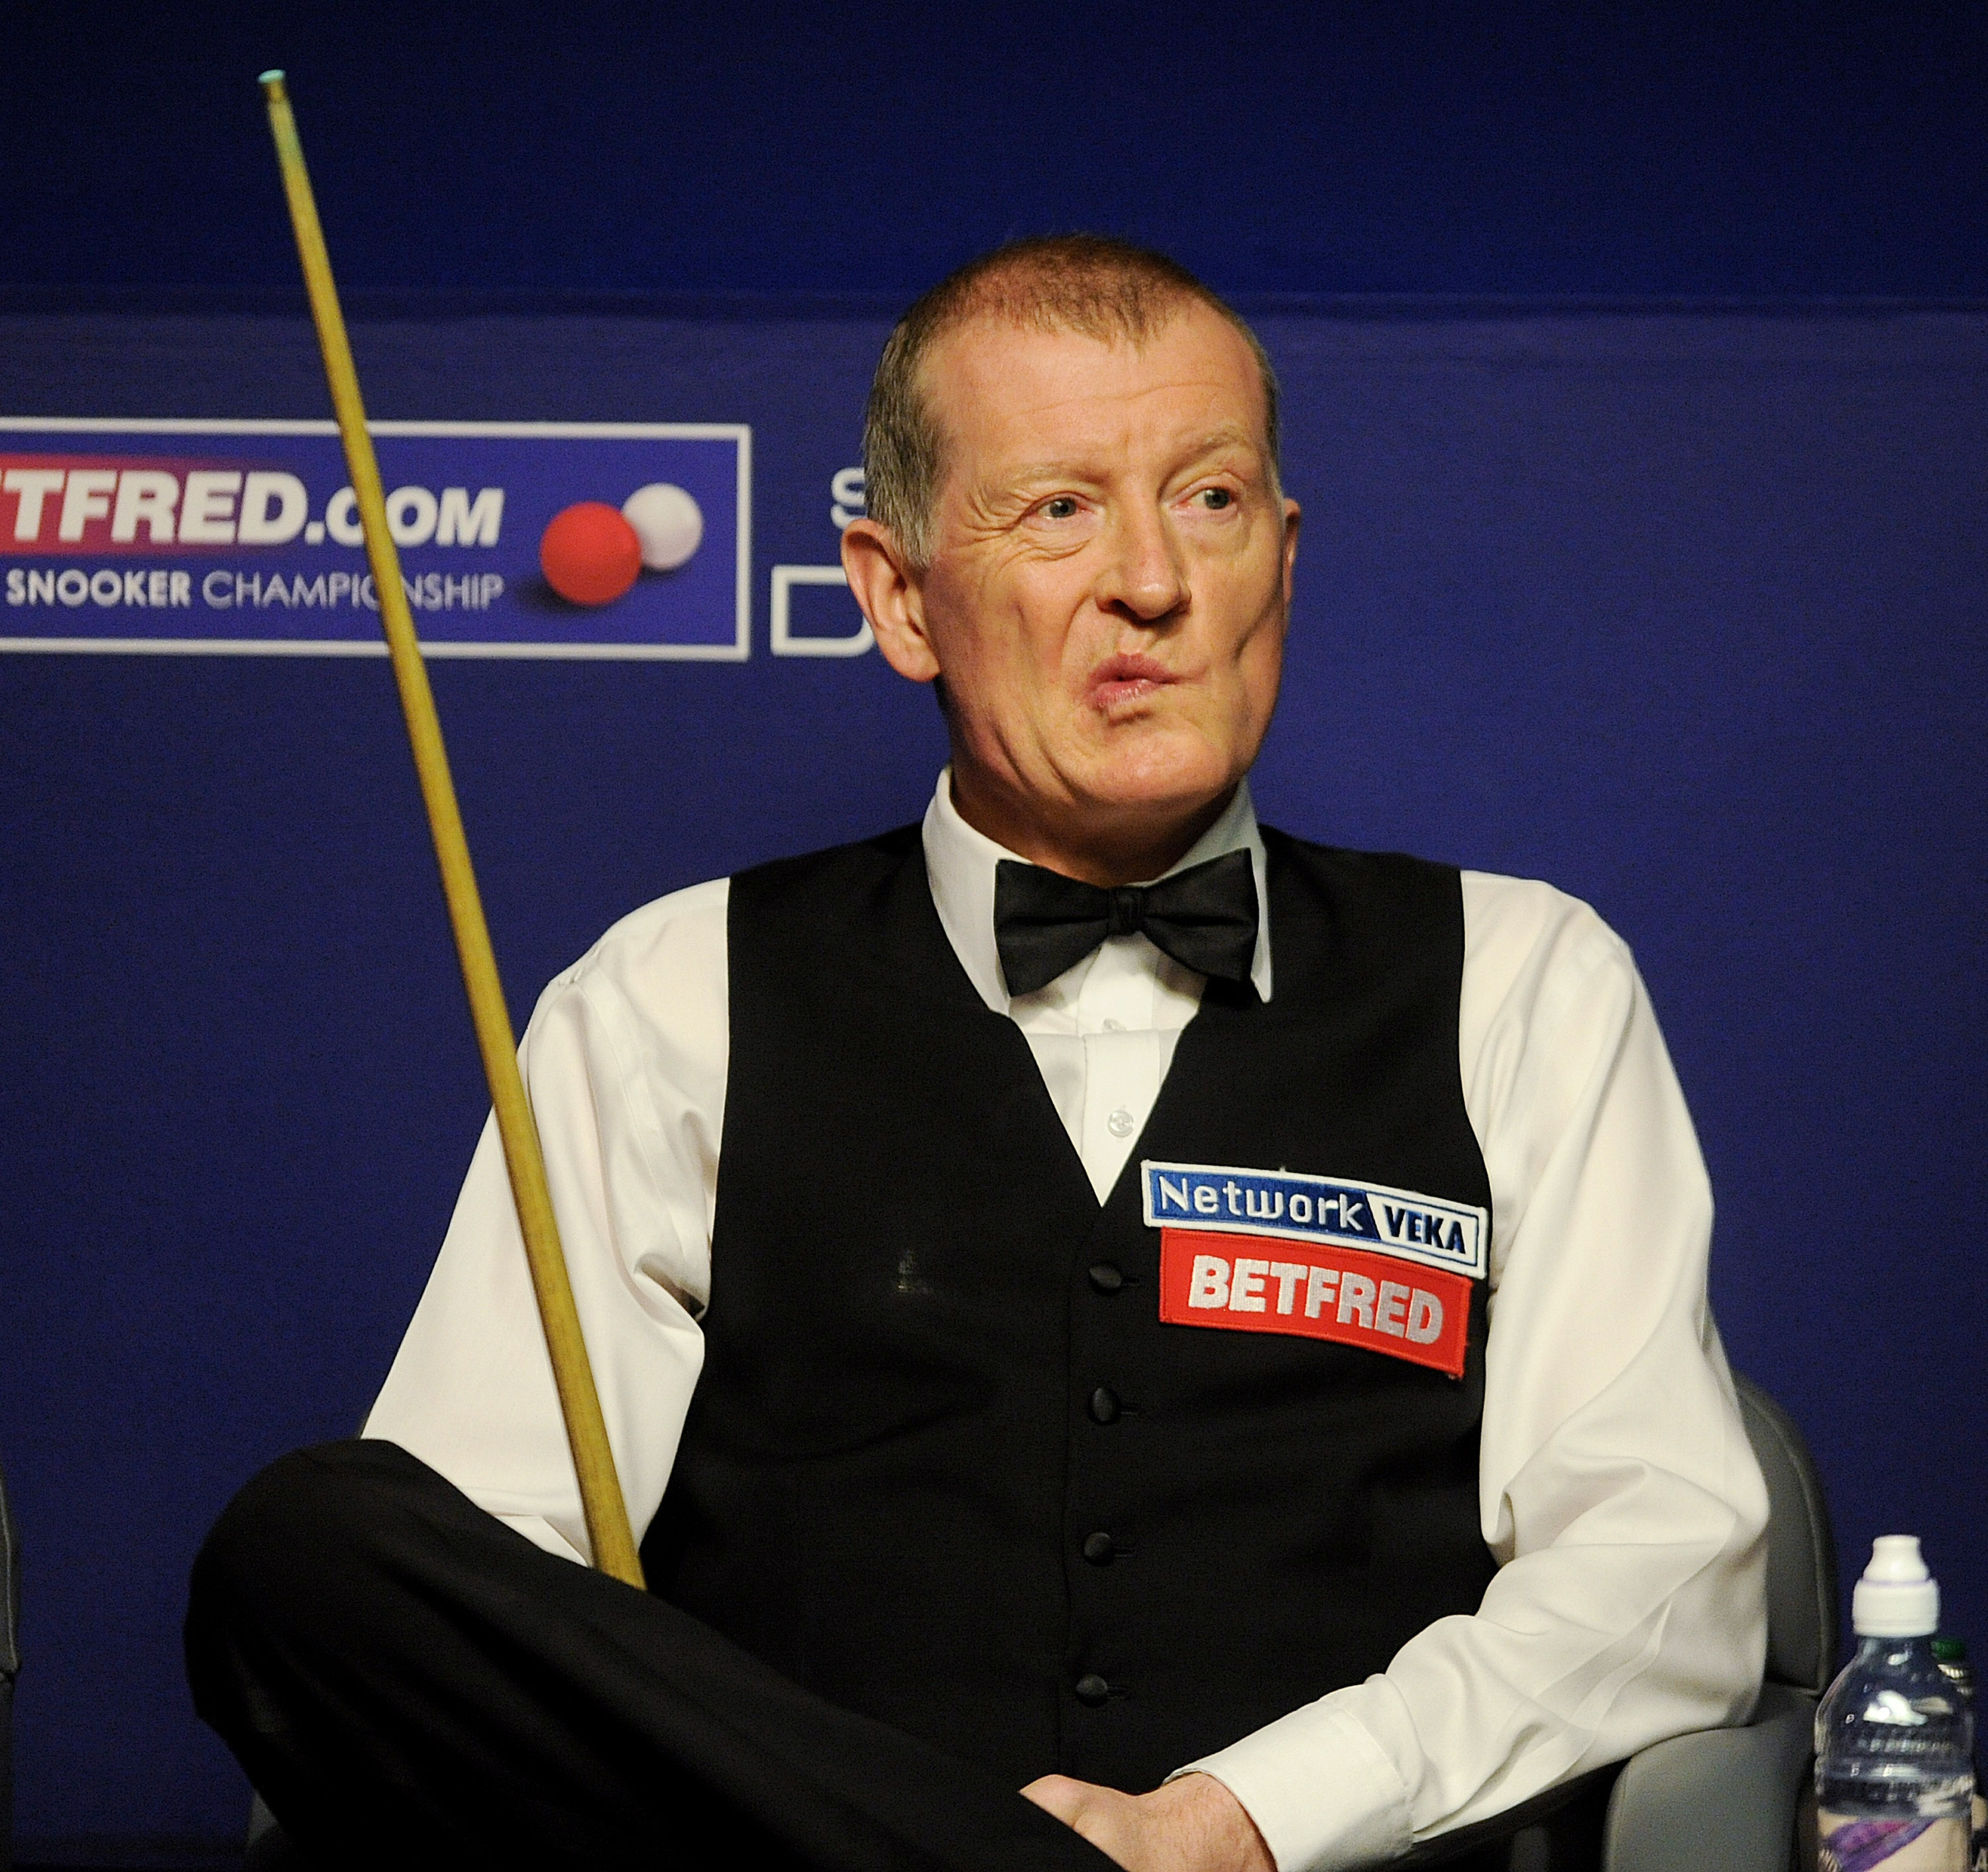 Steve Davis says Ronnie O'Sullivan needs to show more respect for snooker